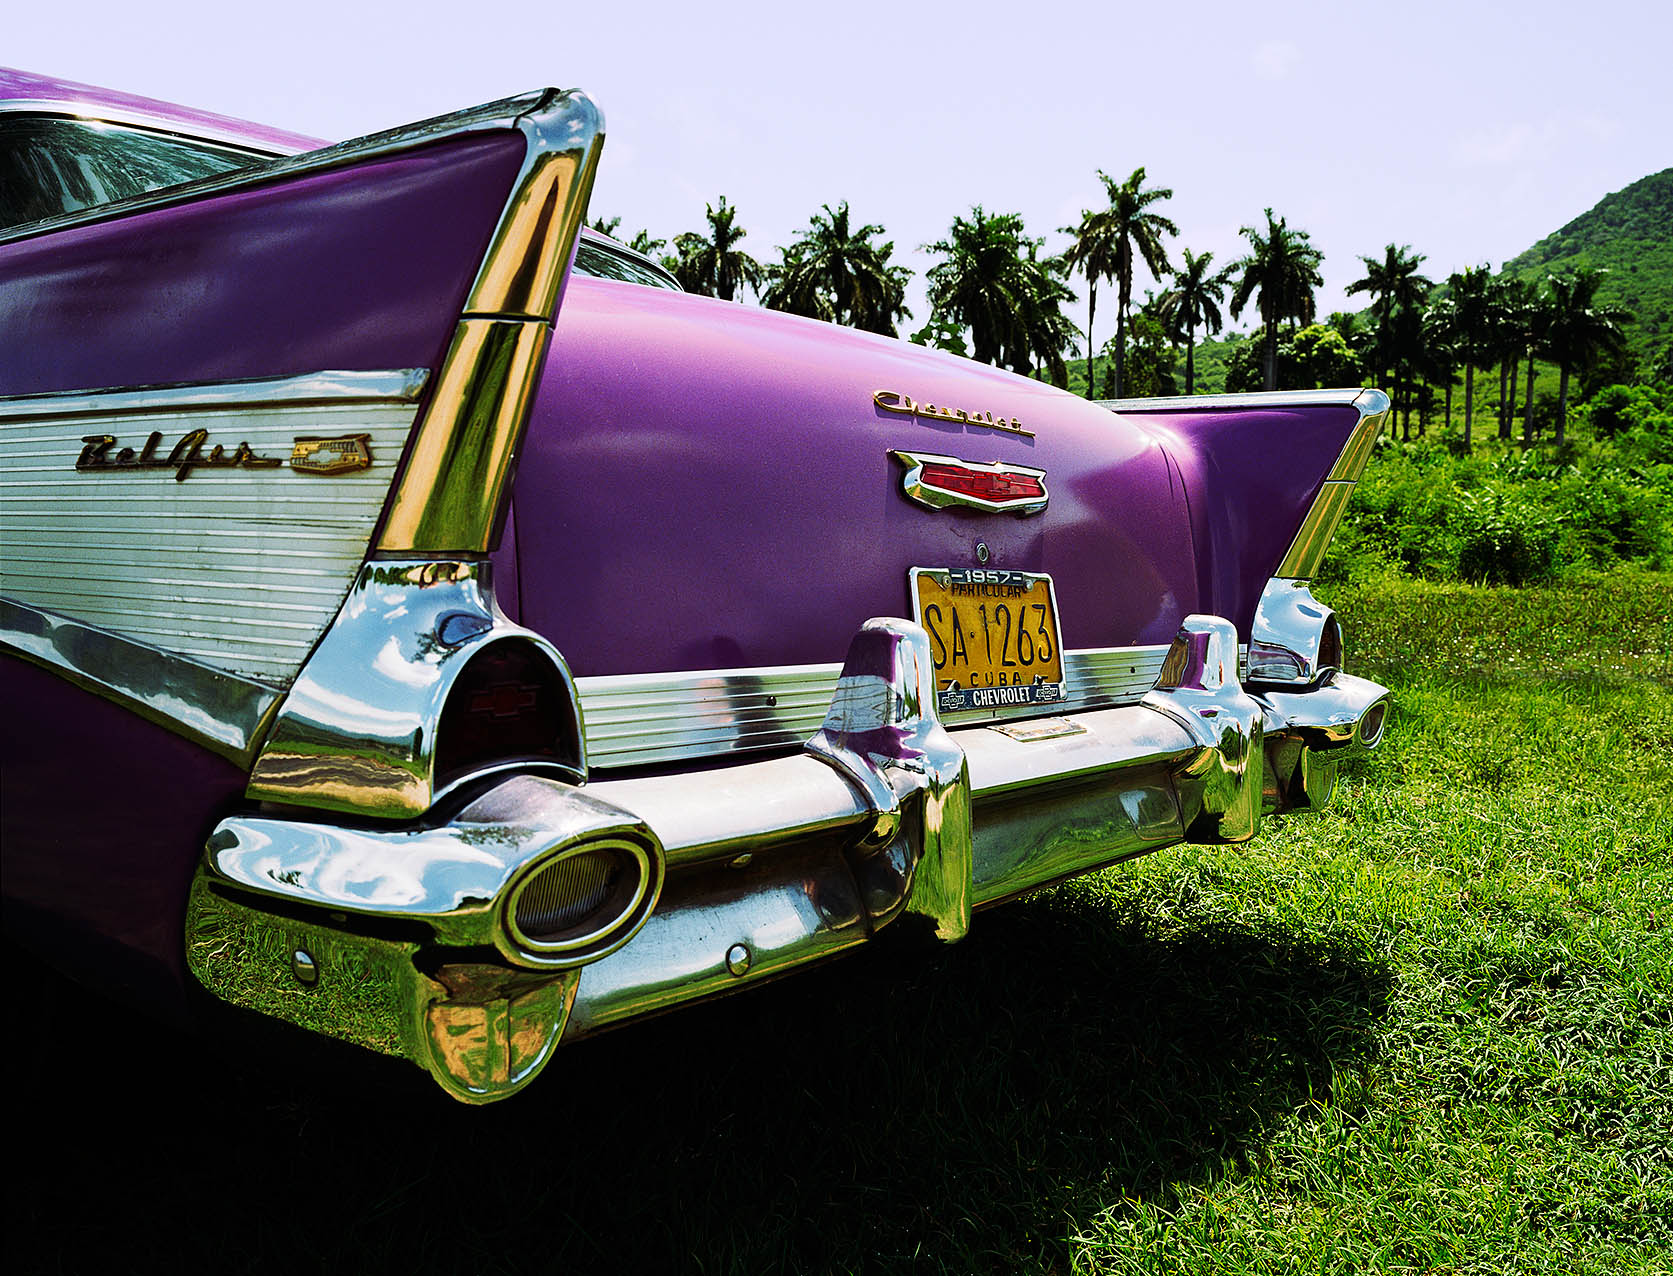 Cuba-Purple Car sharp0.3 1276px 07